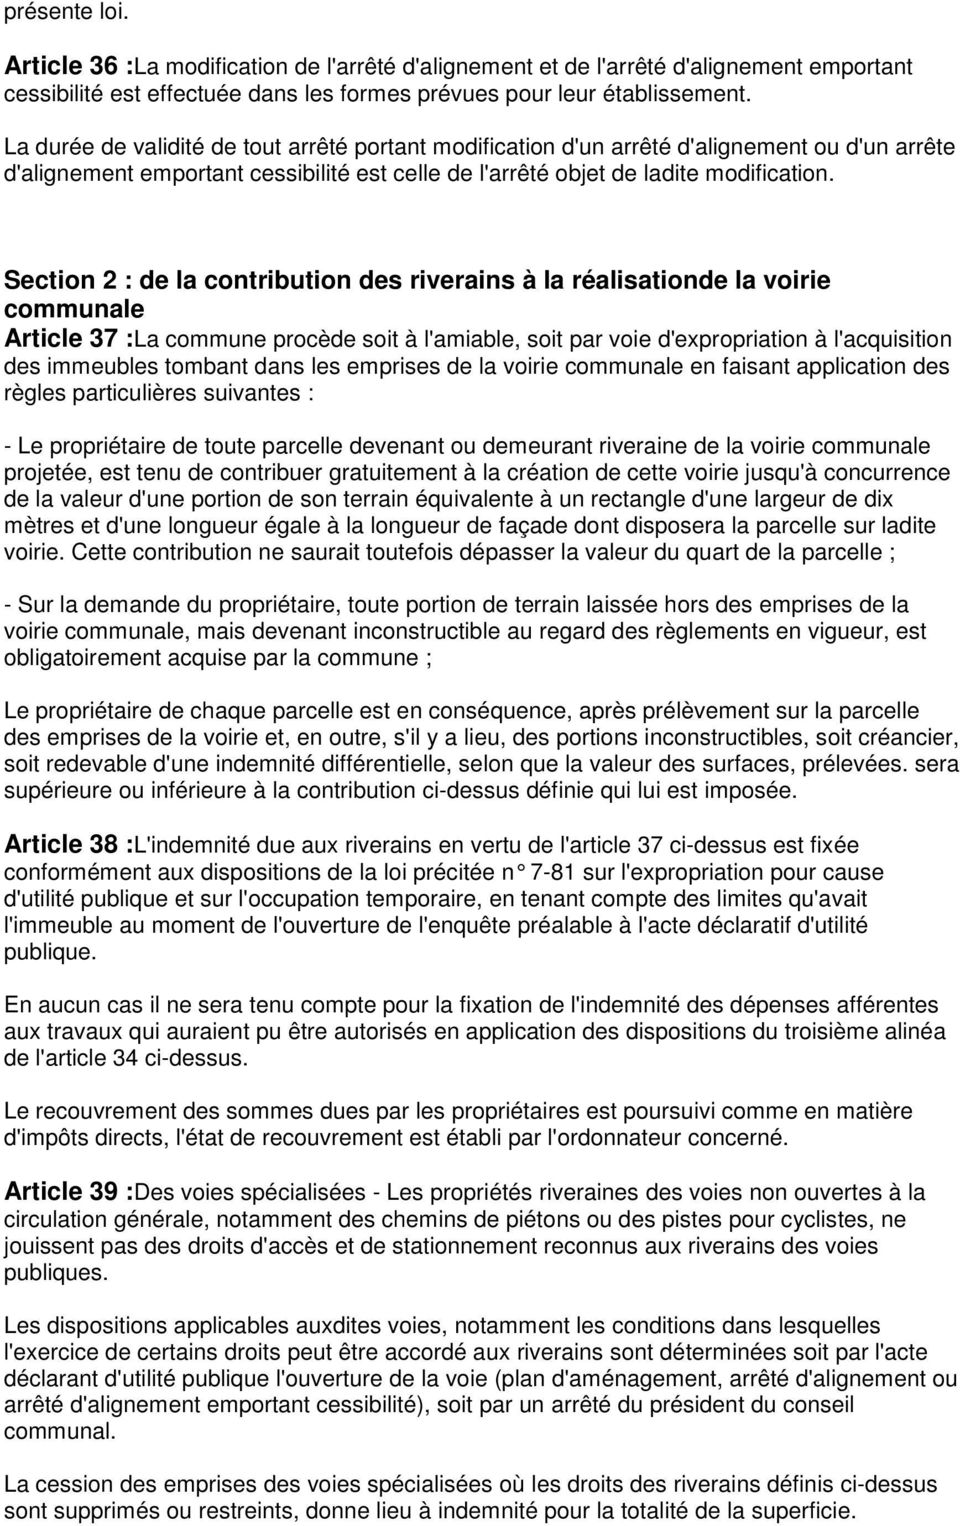 Section 2 : de la contribution des riverains à la réalisationde la voirie communale Article 37 :La commune procède soit à l'amiable, soit par voie d'expropriation à l'acquisition des immeubles